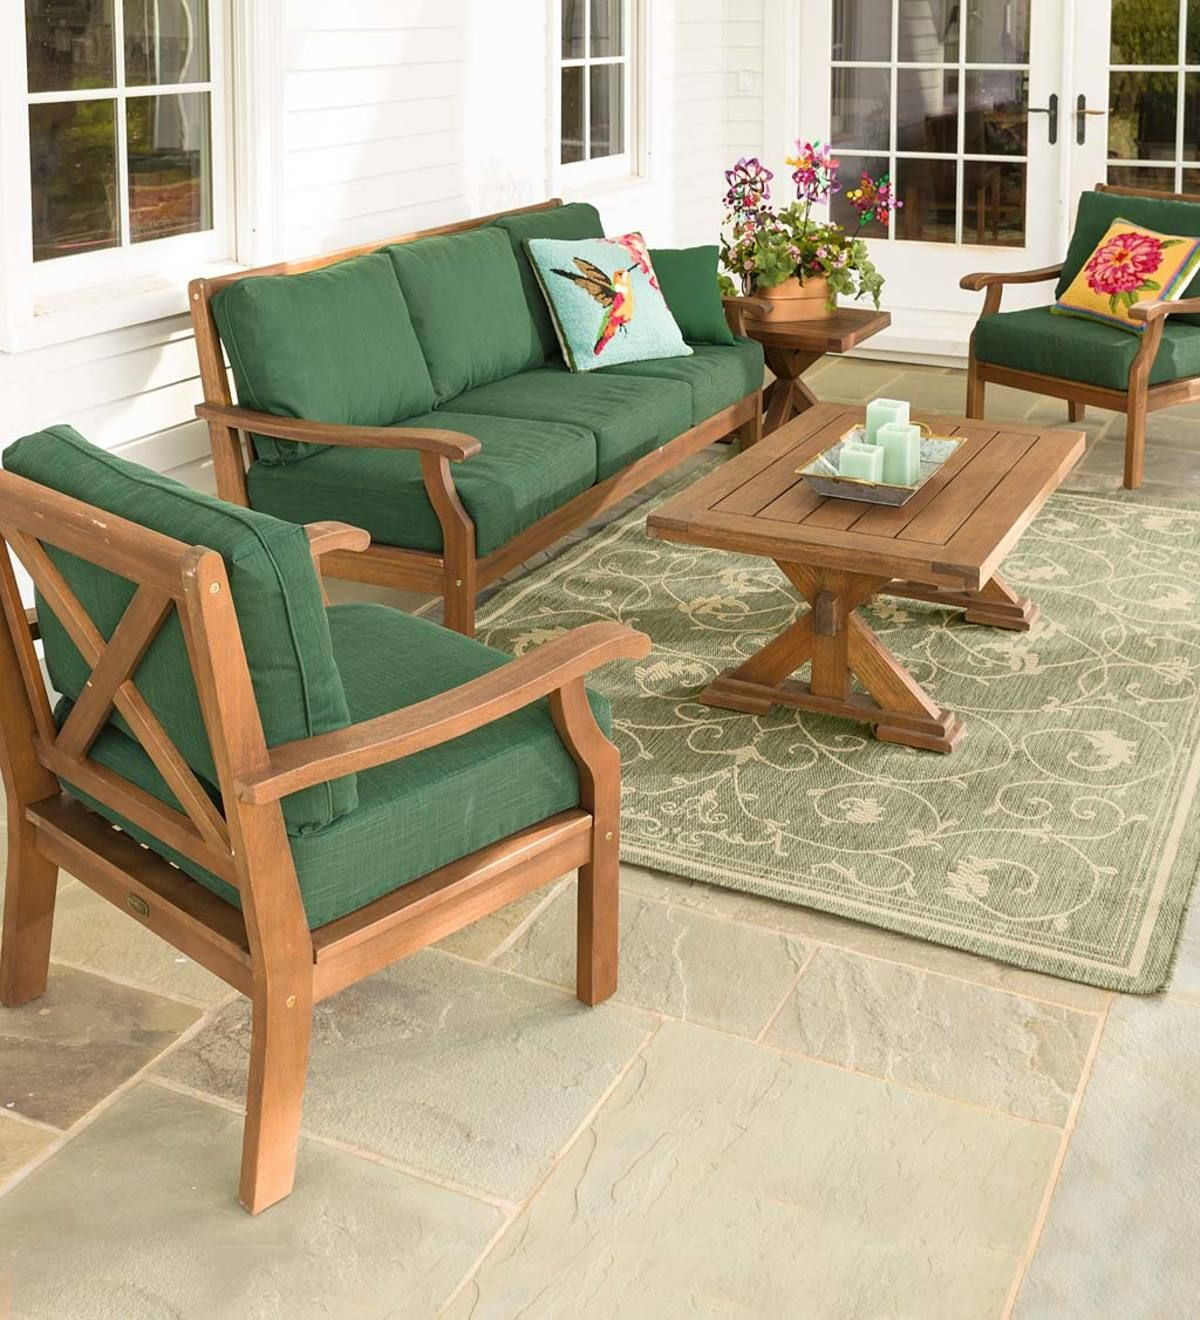 Claremont Seating Collection Eucalyptus Wood Outdoor Furniture